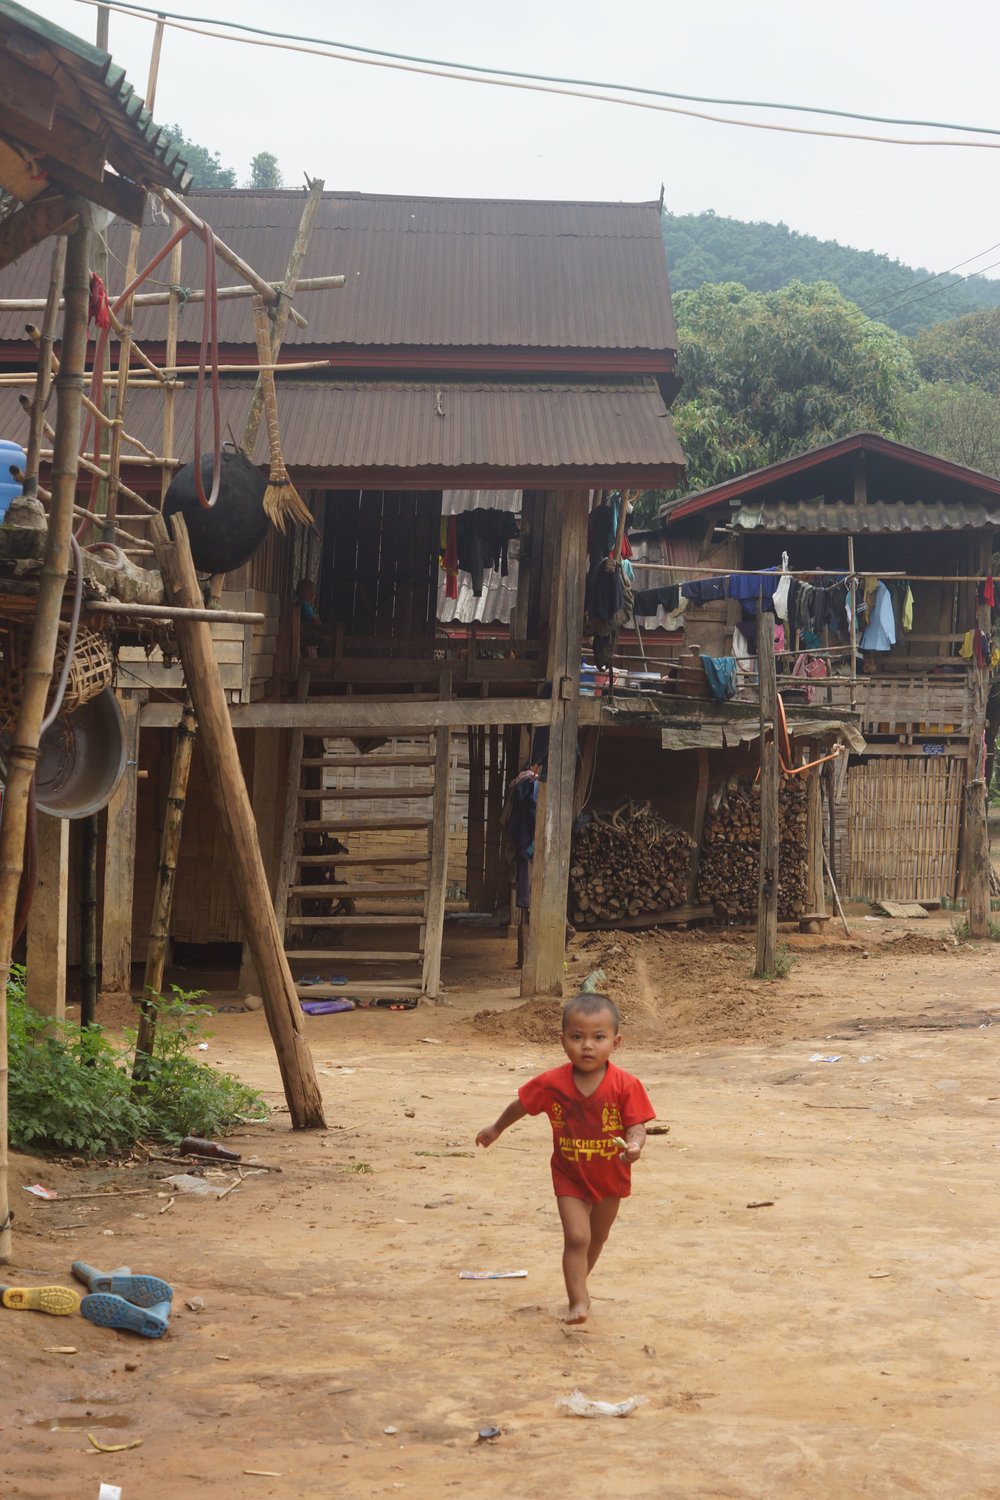 An excited Lakkham-Kao villager, typically pantless.